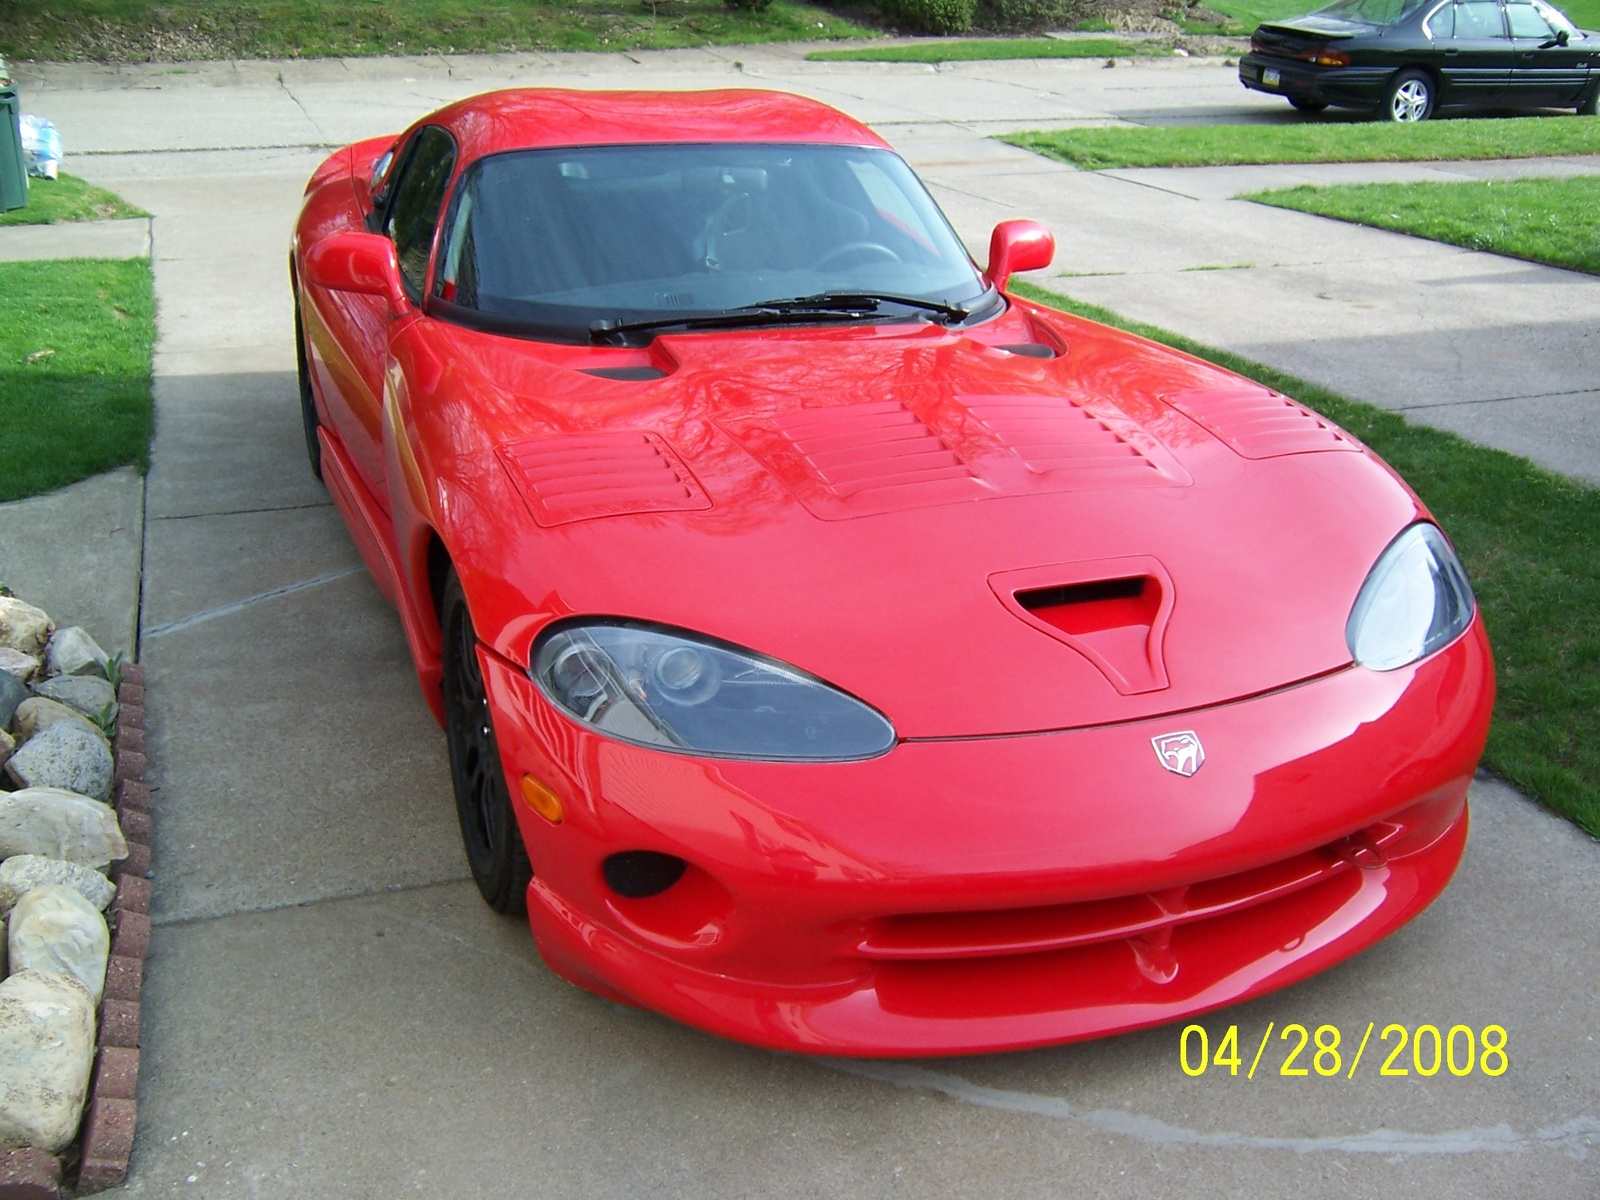 1997 Dodge Viper 2 Dr GTS Coupe picture, exterior